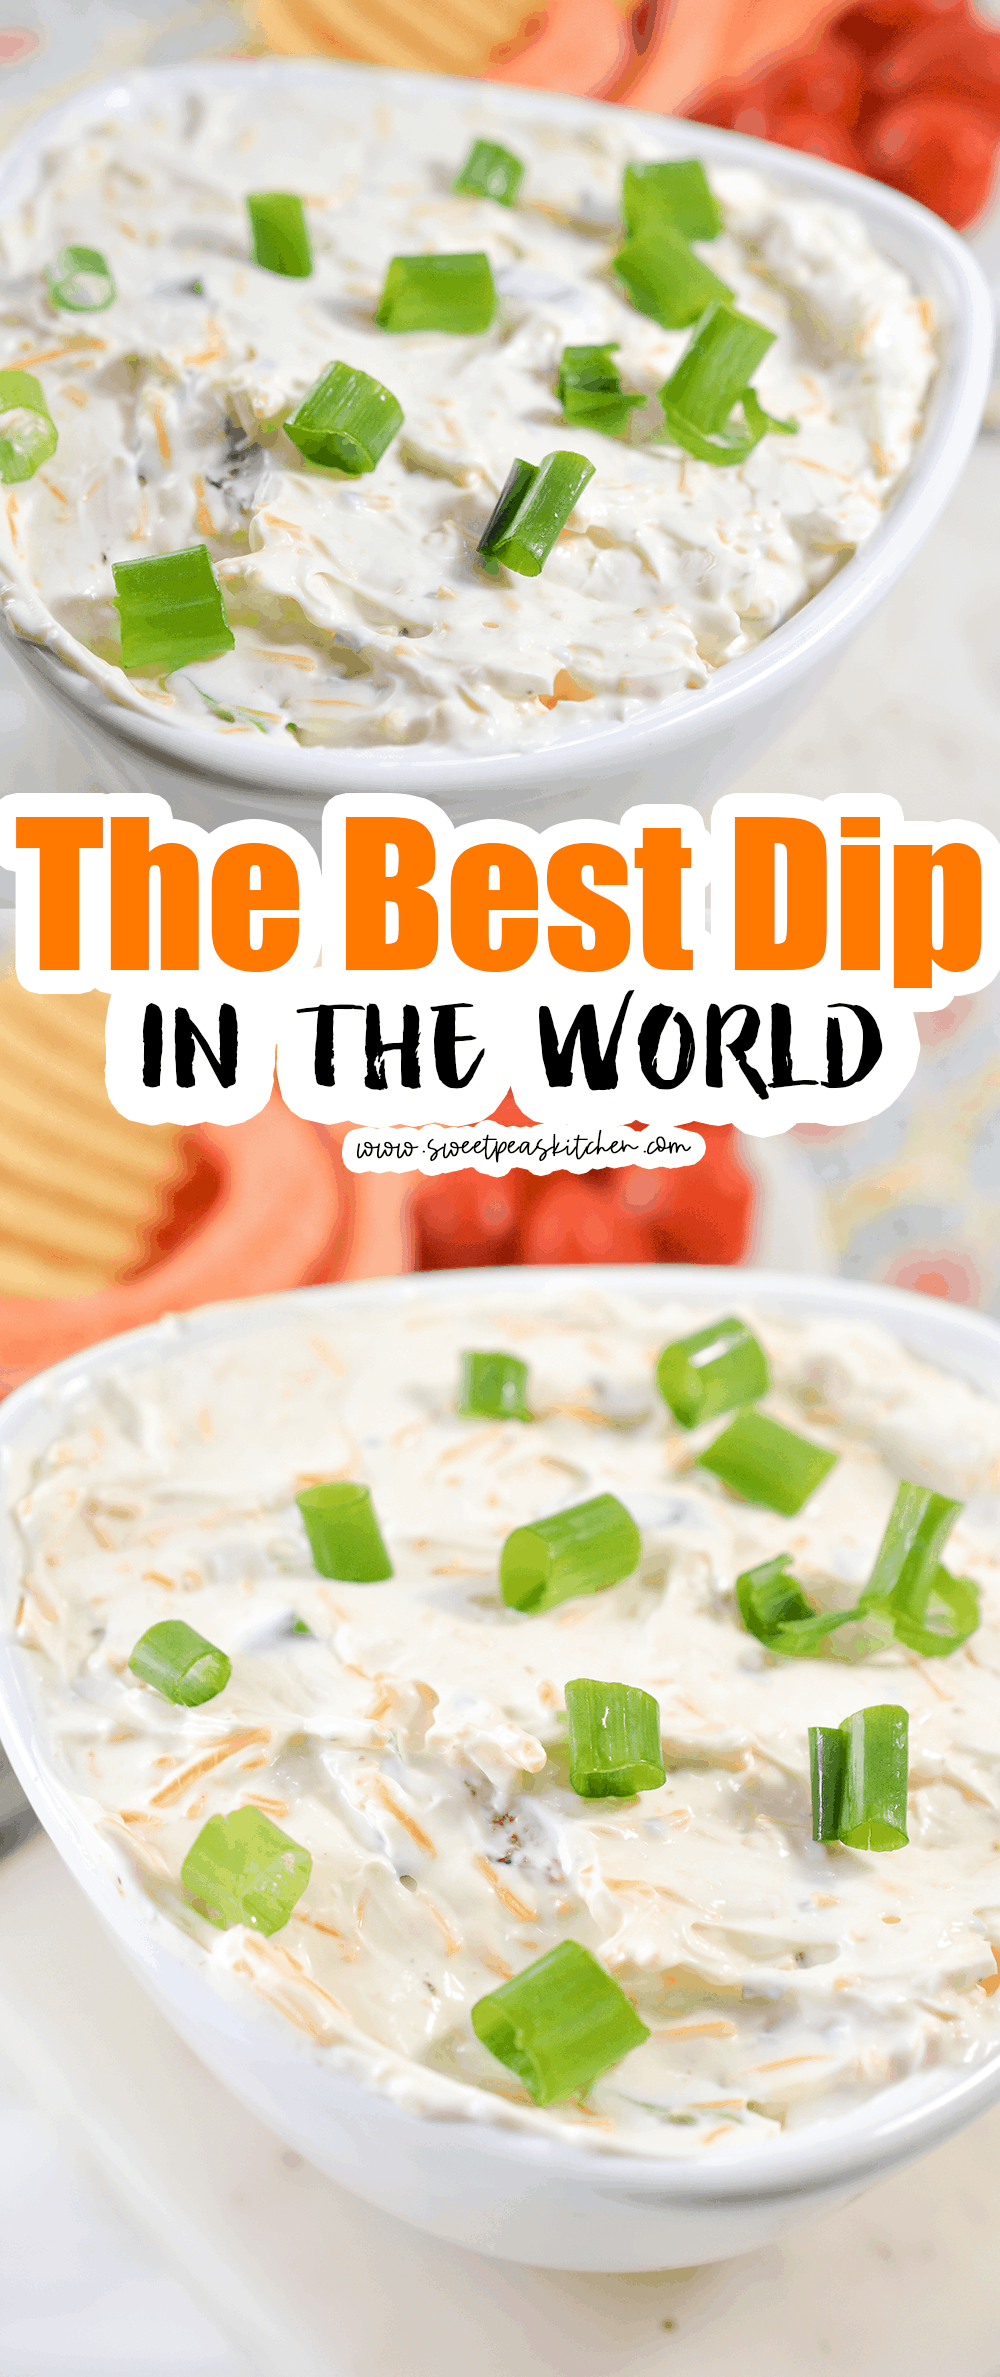 The Best Dip in the World